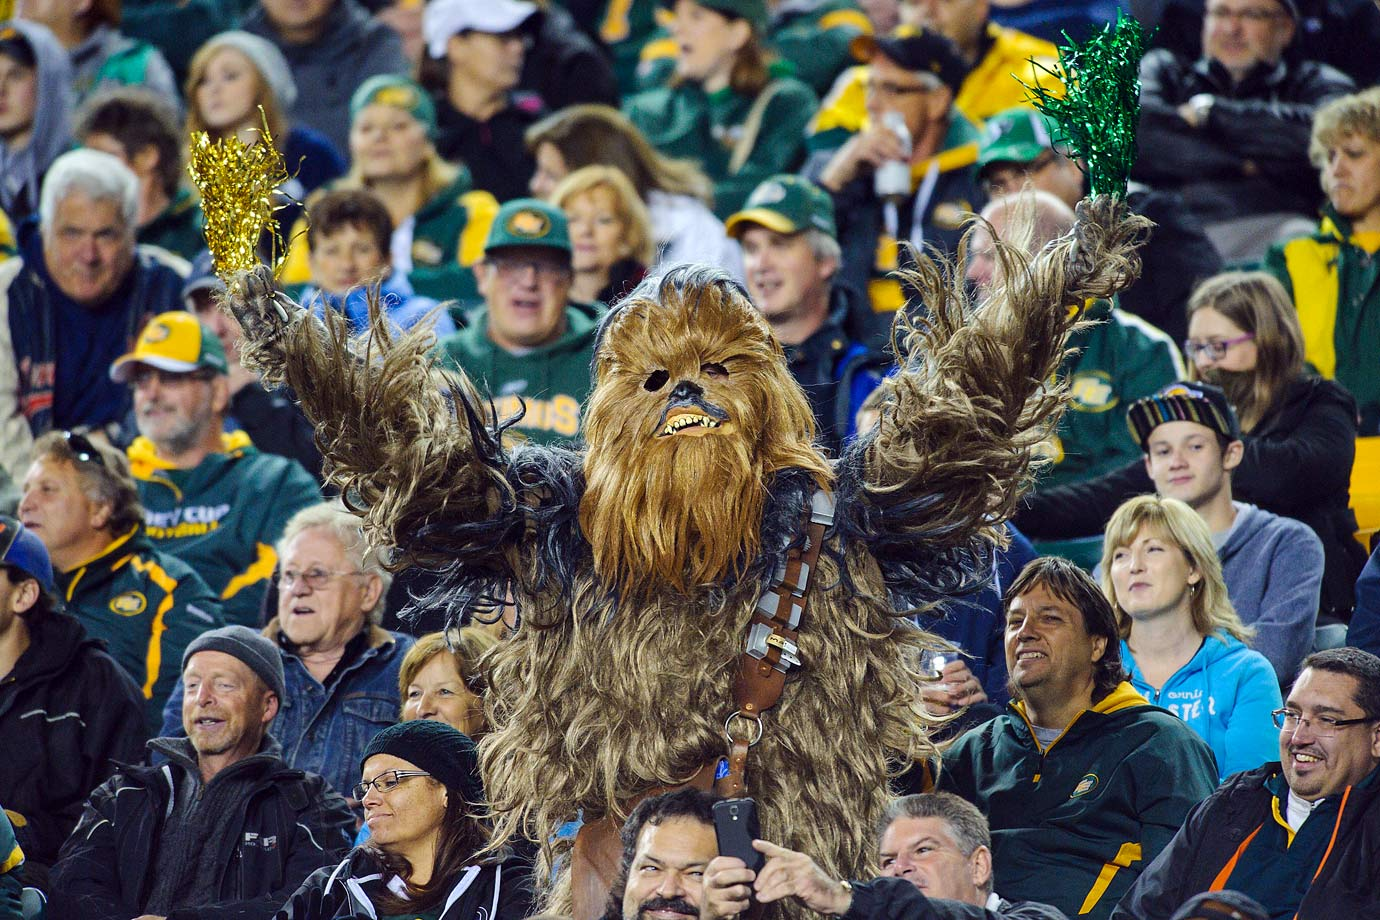 An Edmonton Eskimos fan dressed up as Chewbacca cheers on the team during their CFL game against Saskatchewan Roughriders on Sept. 26, 2014 at Commonwealth Stadium in Edmonton, Canada.